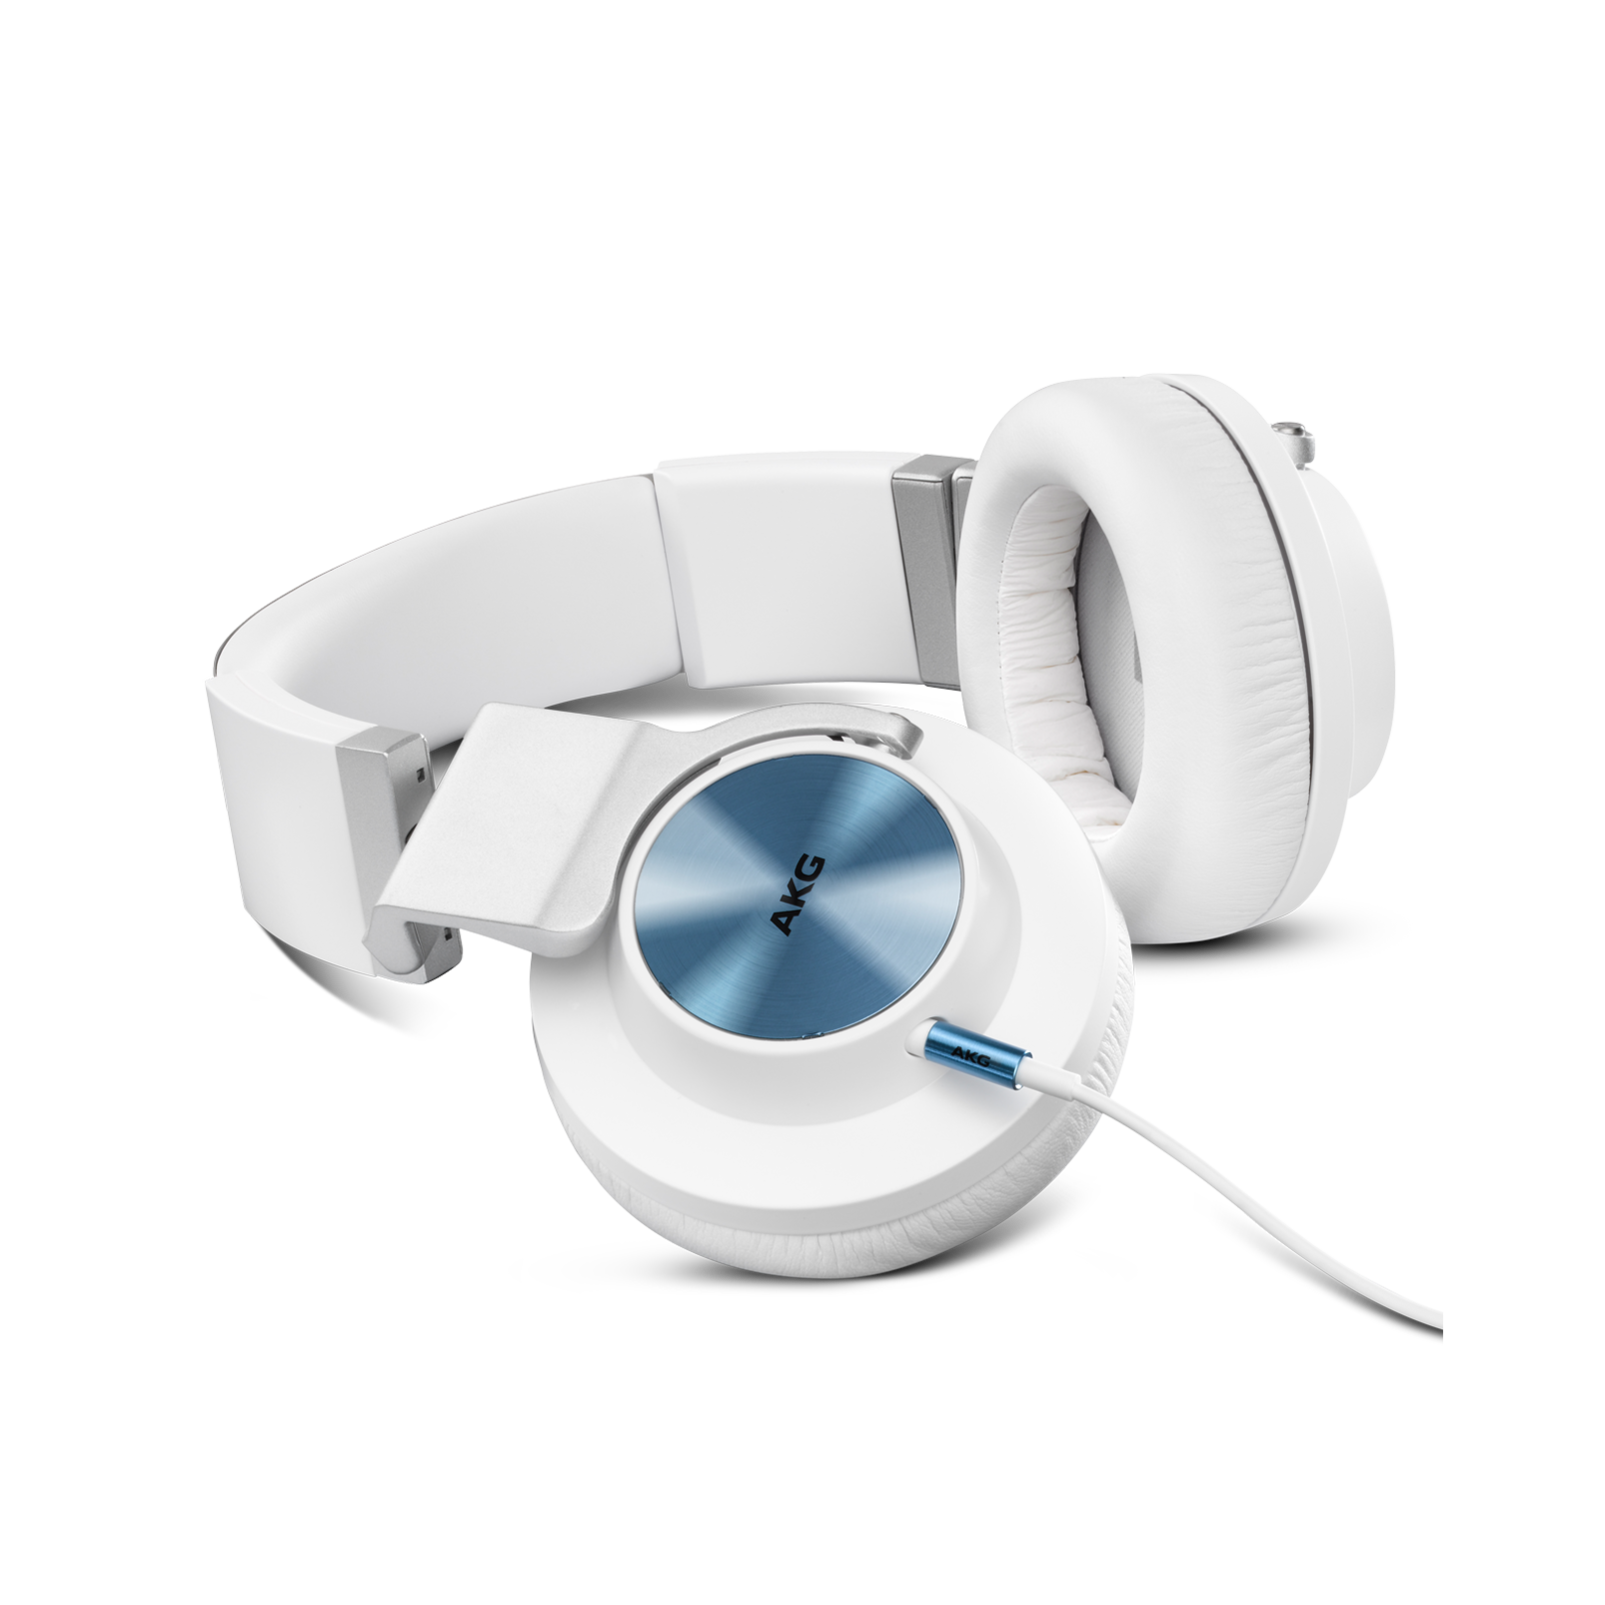 K 545 - White - High performance over-ear headphones with microphone and remote - Detailshot 1